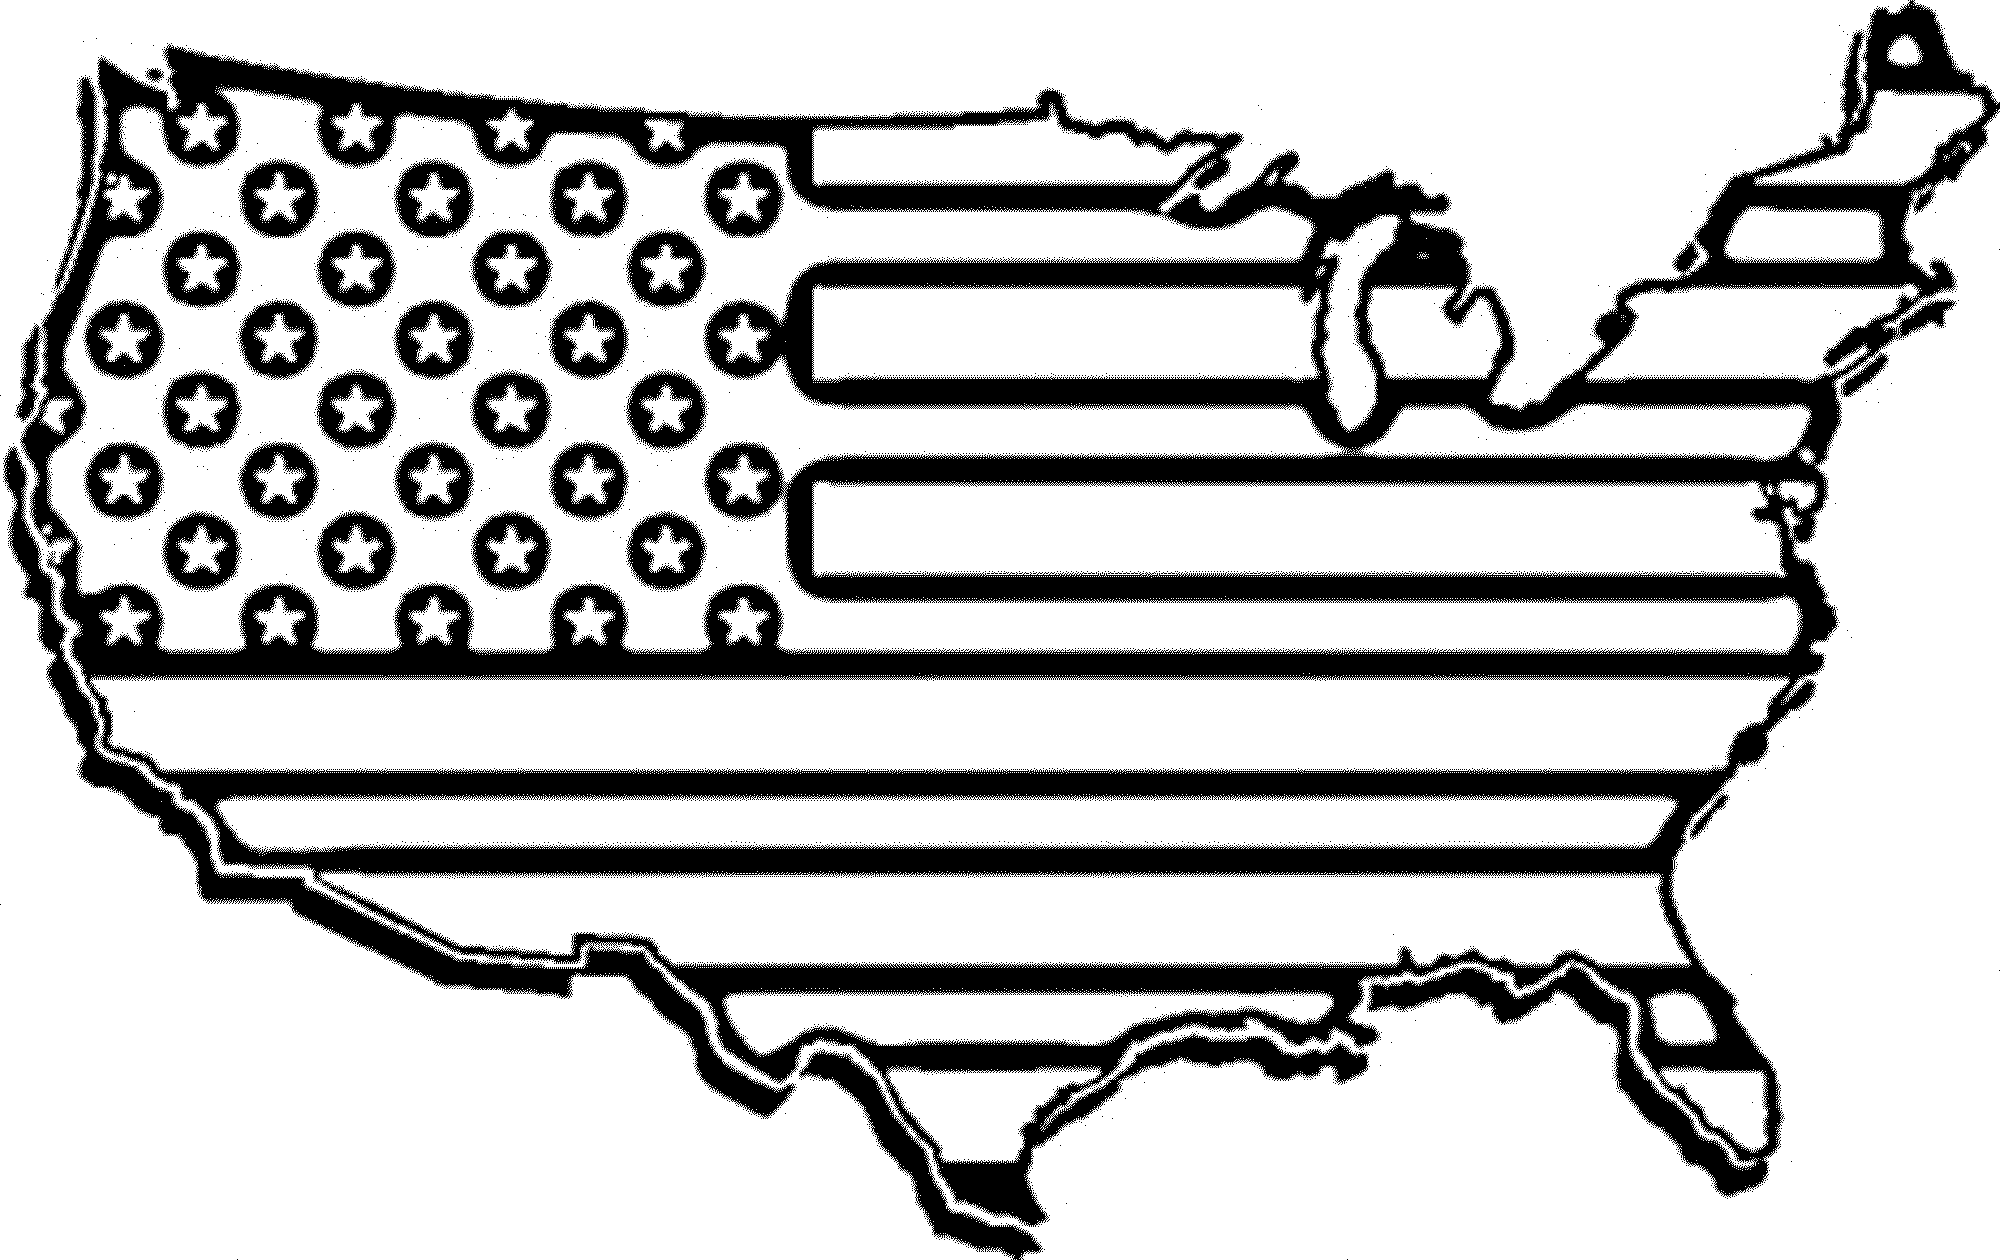 White united states map clipart clip art transparent library Flag Clipart Black And White | Free download best Flag Clipart Black ... clip art transparent library